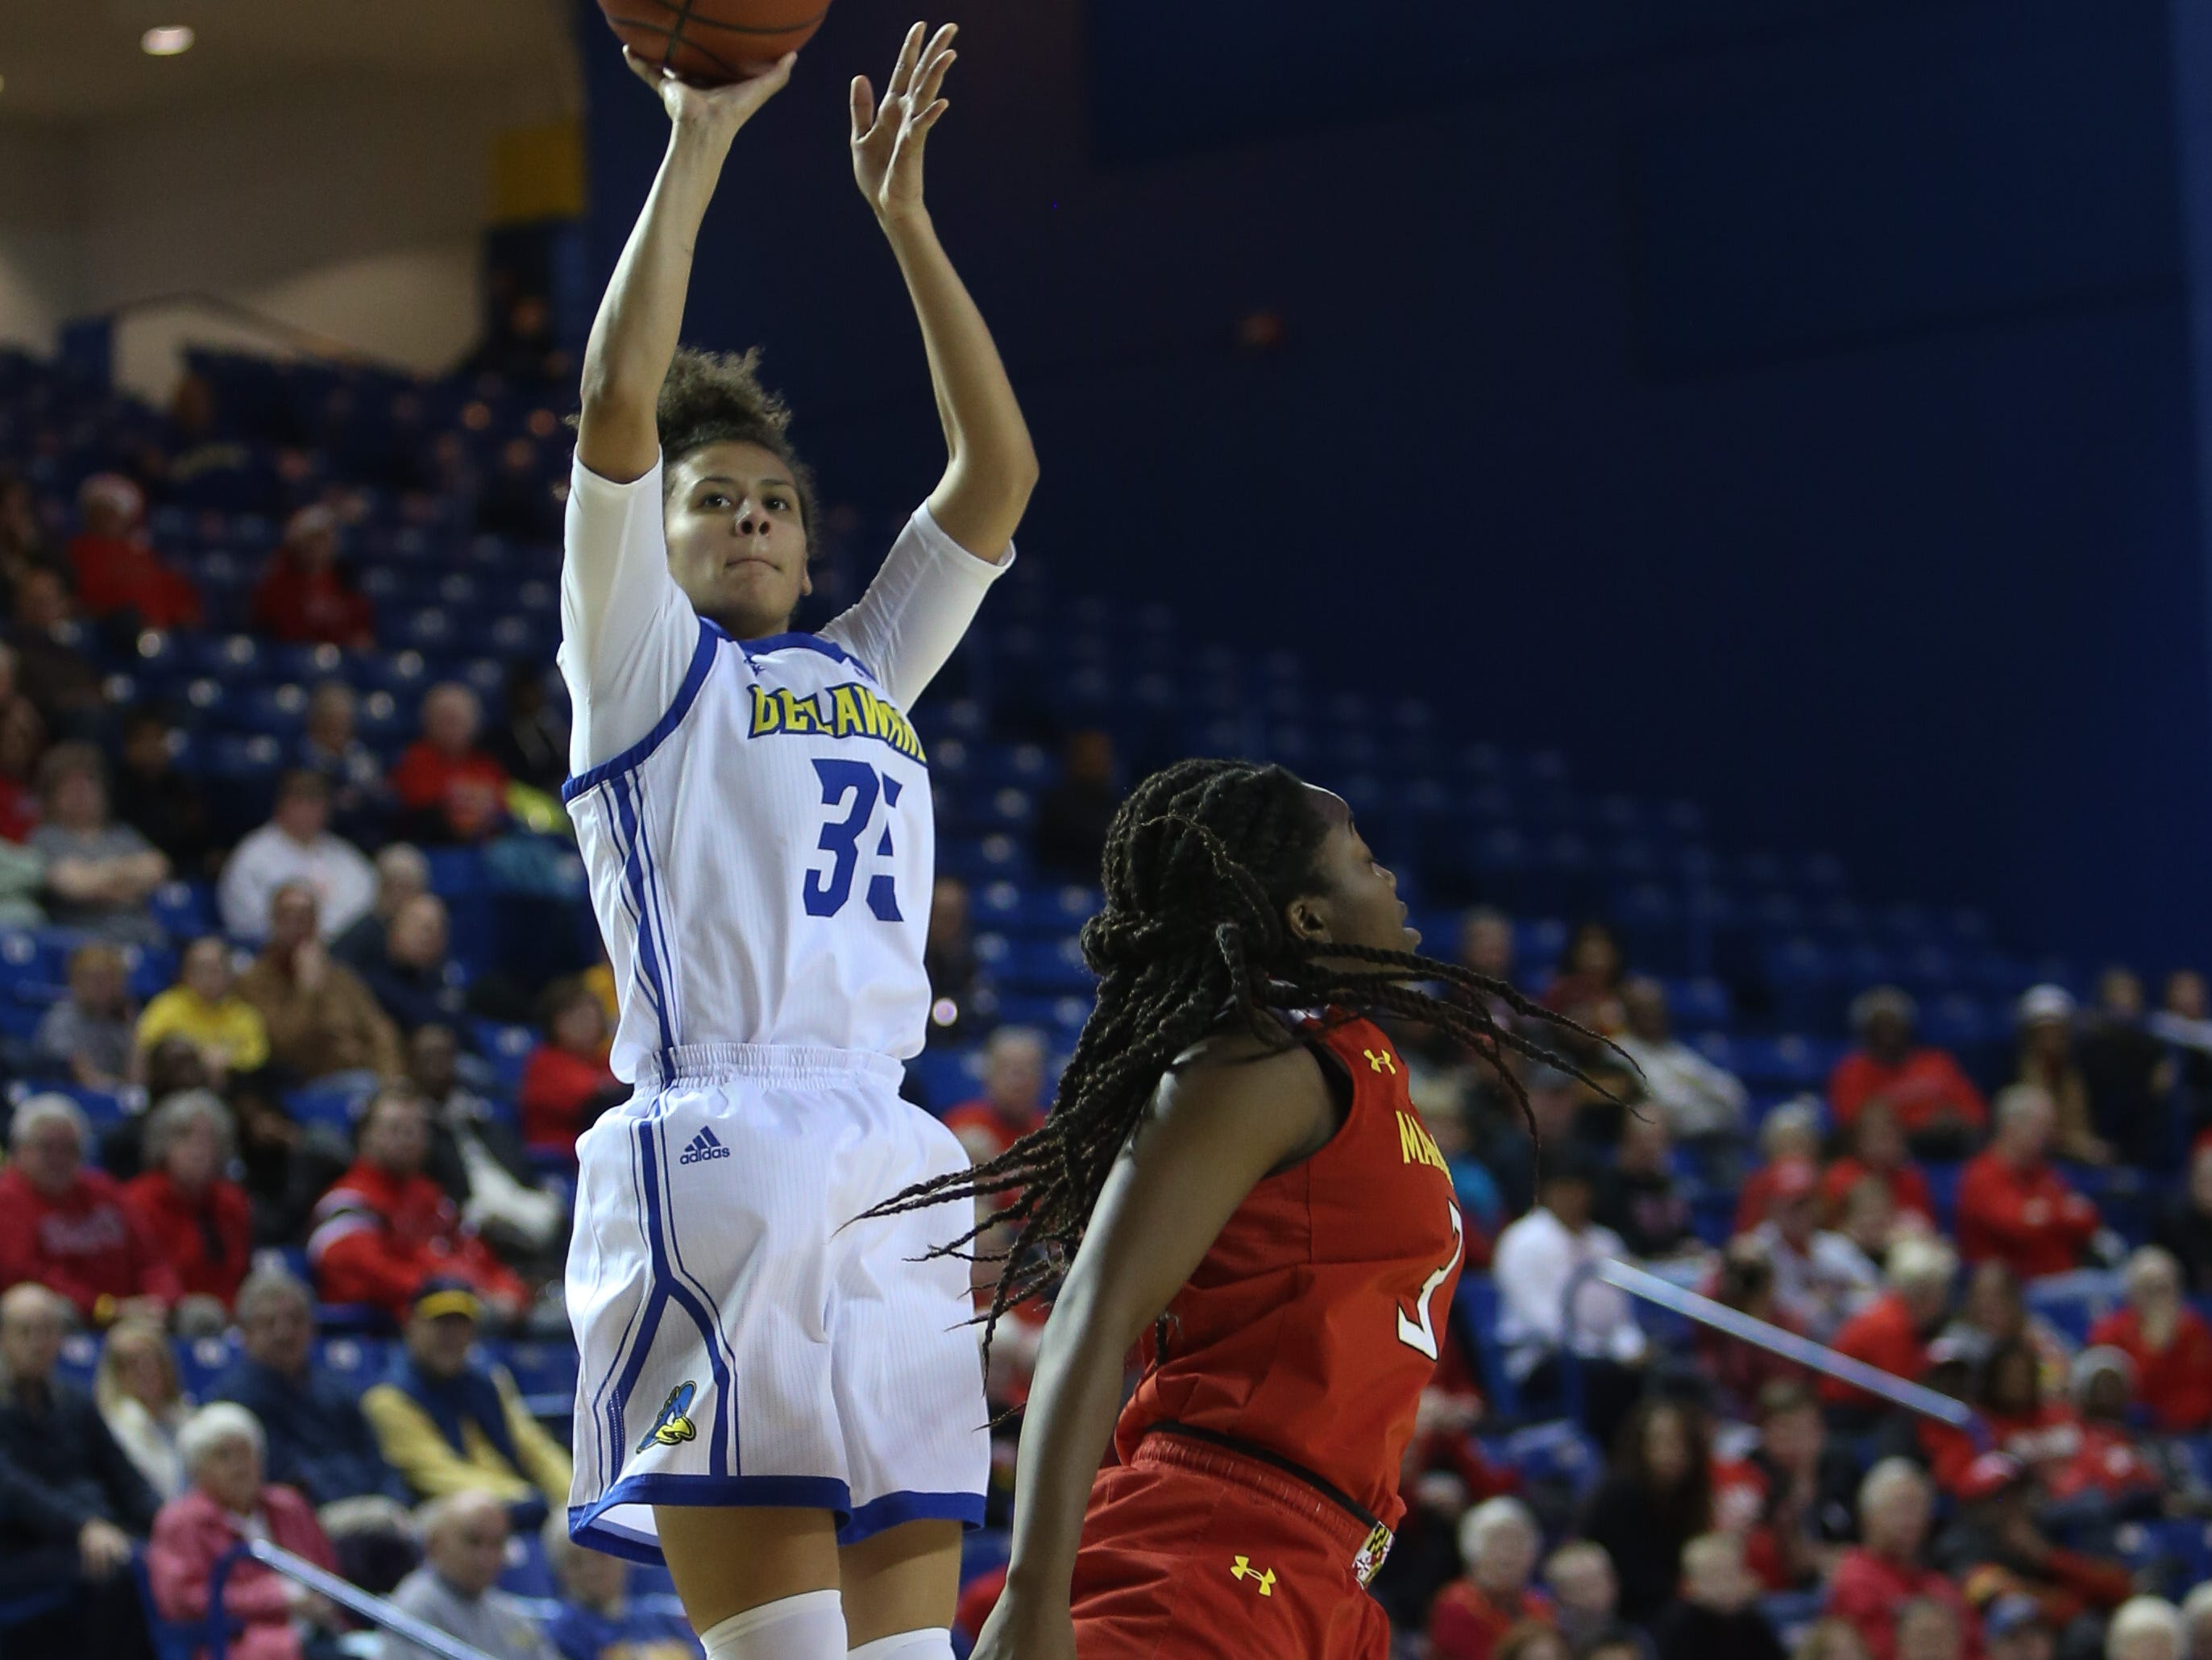 Delaware guard Alison Lewis rises up for two over Maryland guard Channise Lewis. Delaware The University of Delaware women's basketball team falls to No. 5 University of Maryland 77-53 at the Bob Carpenter Center Thursday.